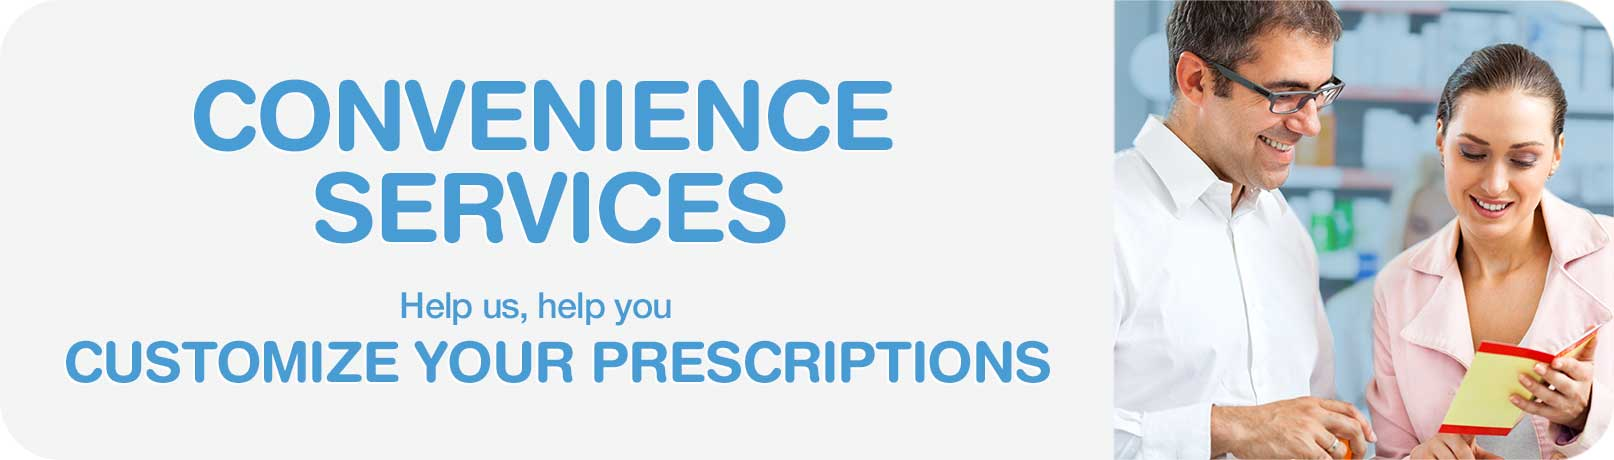 Convenience Services. Help us, help you. Customize your prescriptions.